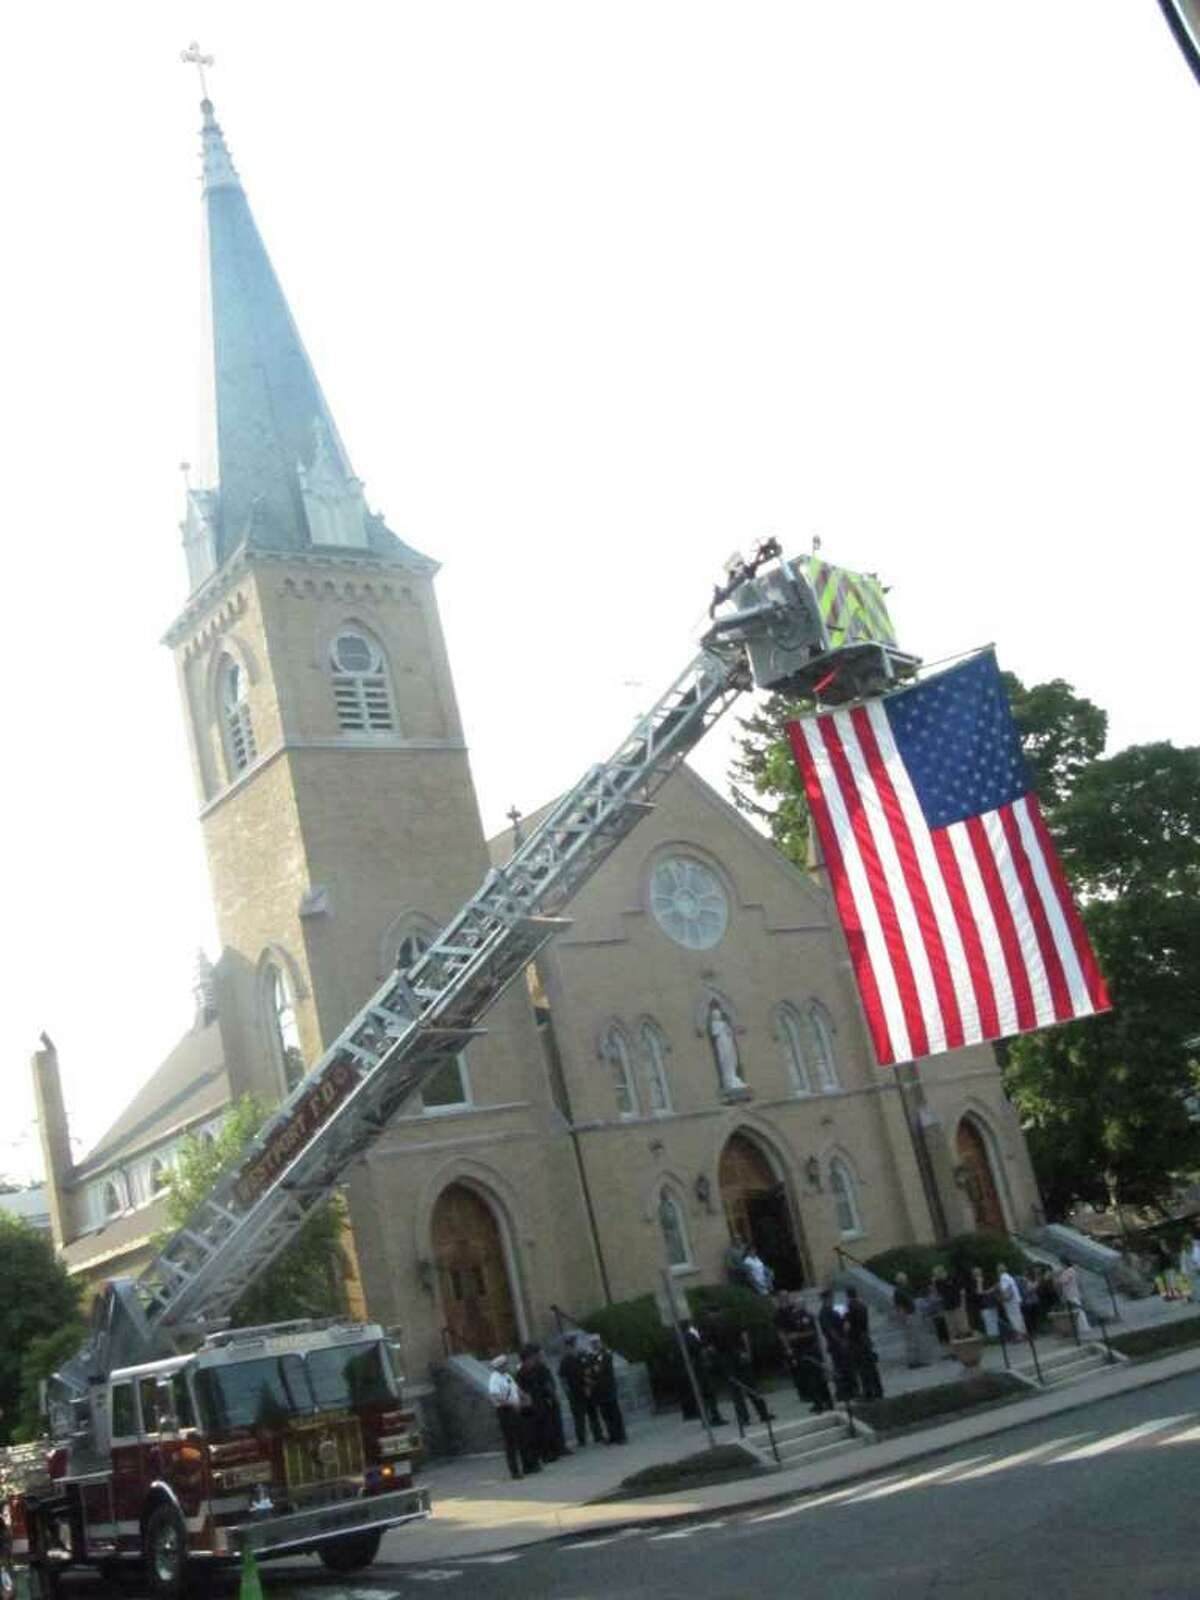 An American flag is unfurled from a Westport Fire Department ladder truck in front of Assumption Church where a memorial service took place Tuesday night for firefighters who died in the line of duty.